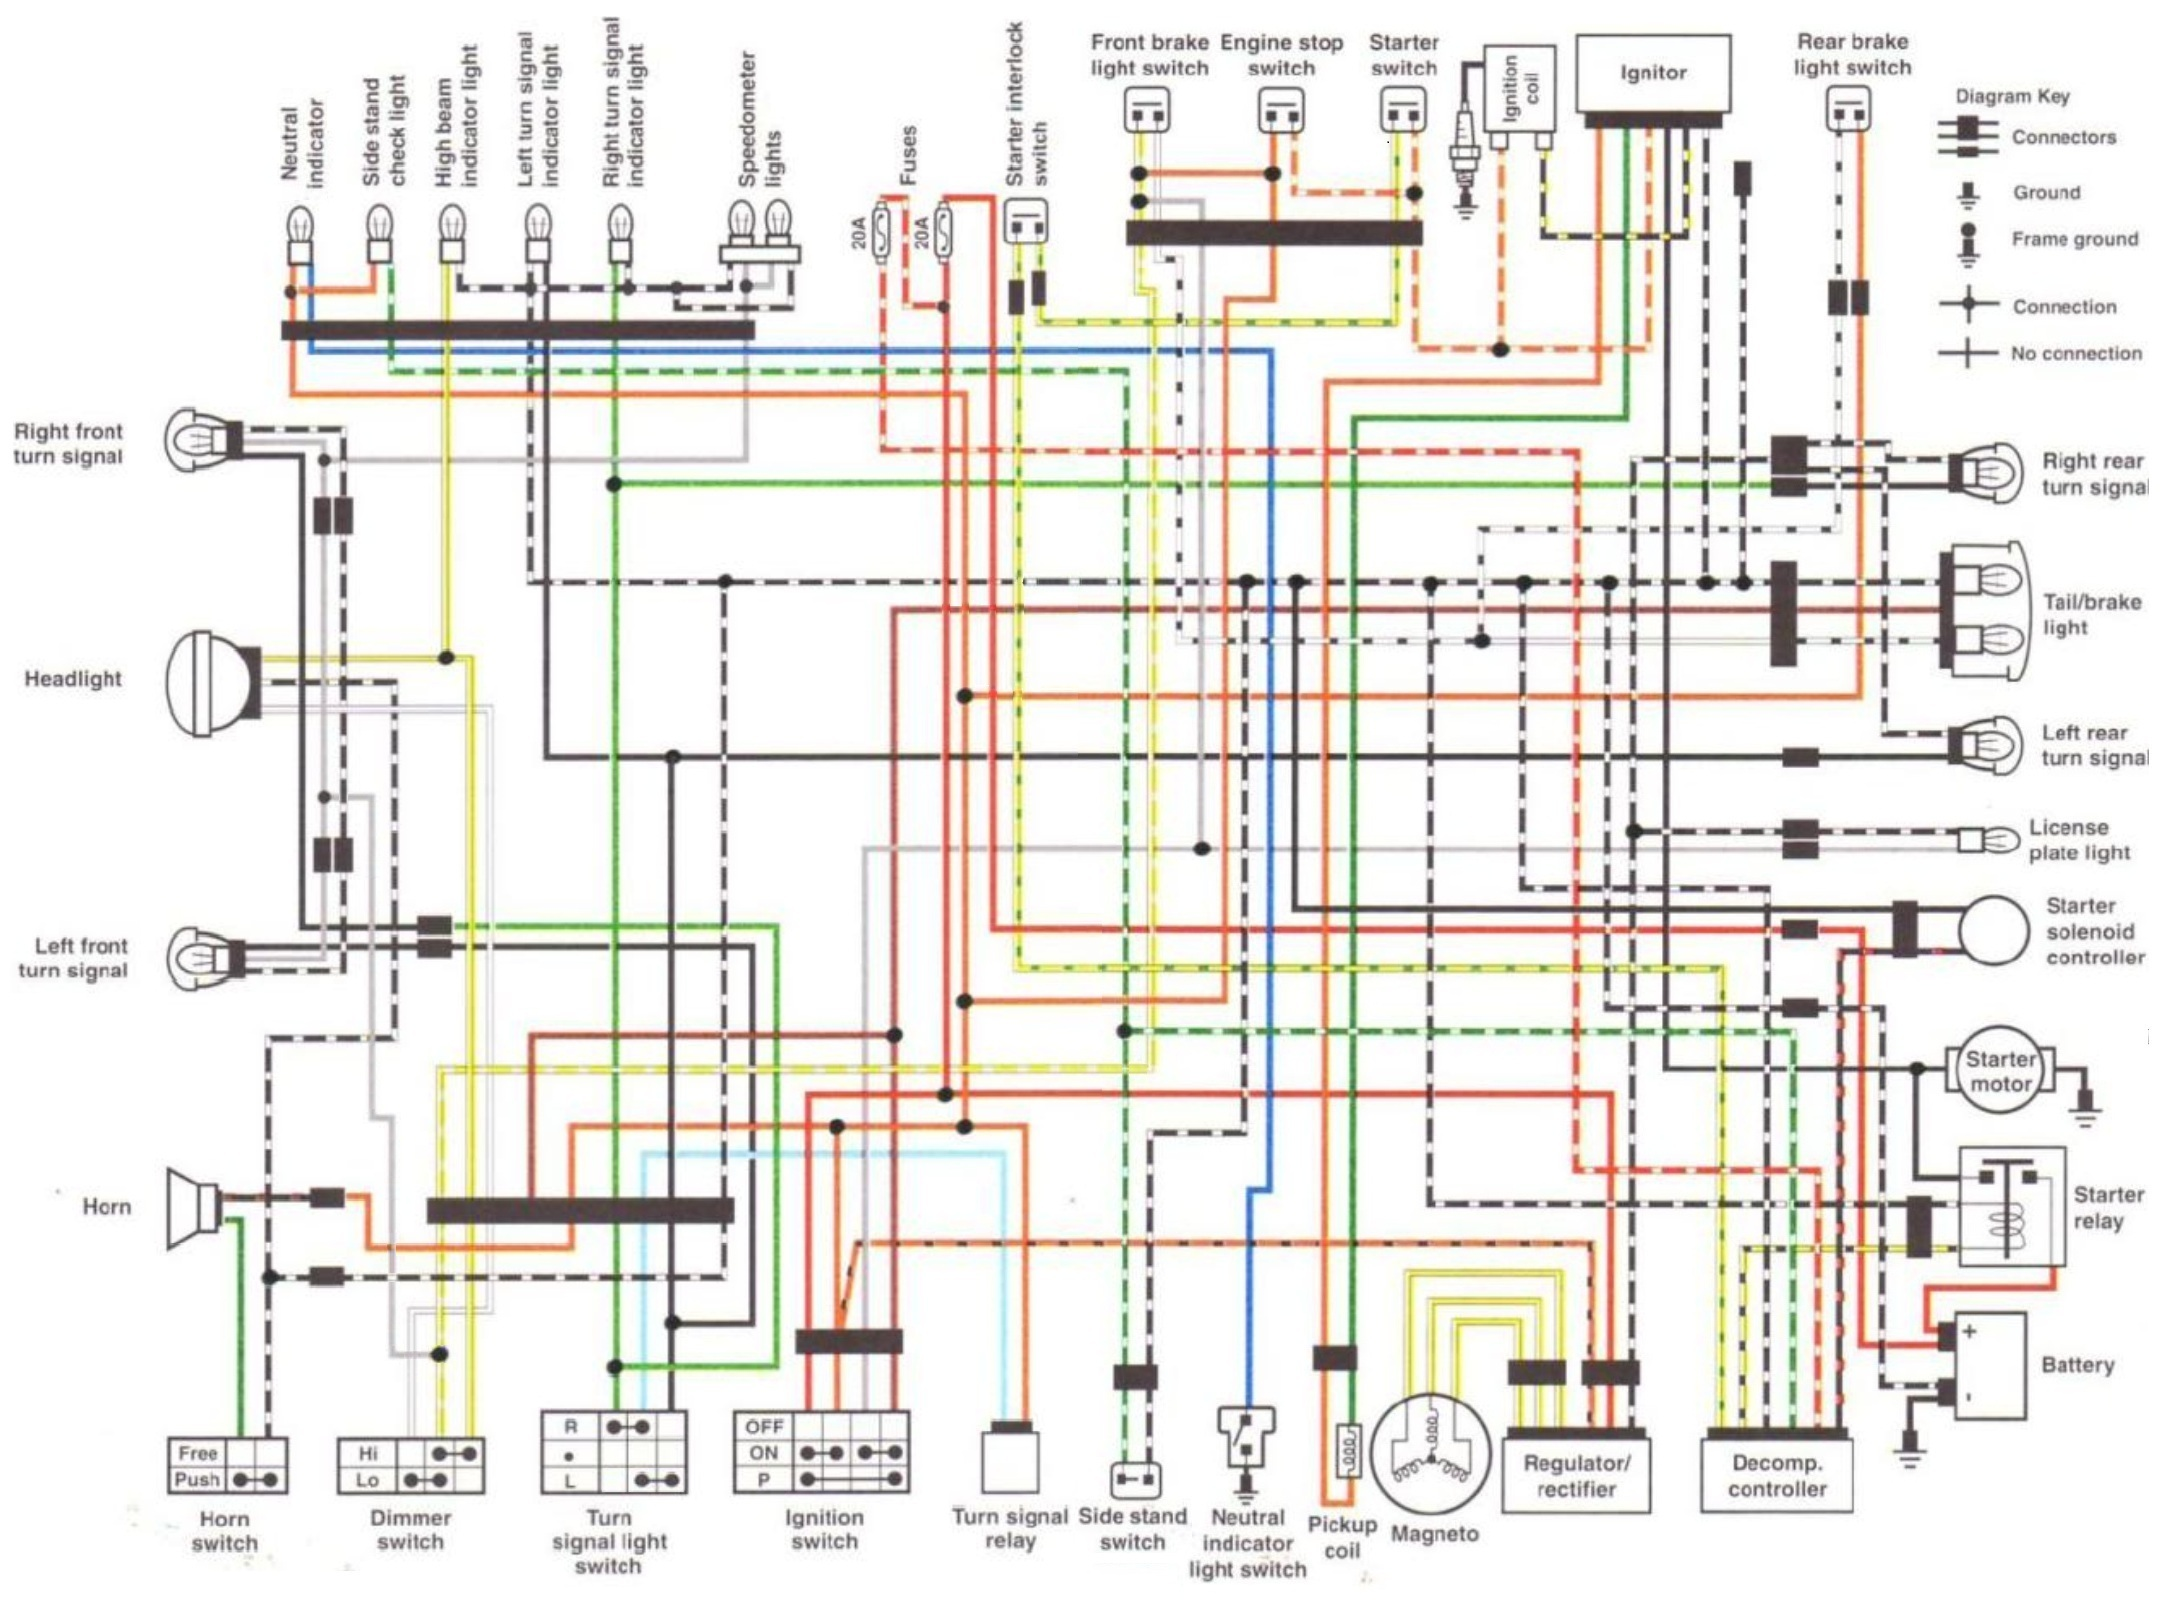 wiring suzukisavage com clymer's wiring diagram in one image Drag Specialties Motorcycle Parts Catalog at gsmportal.co